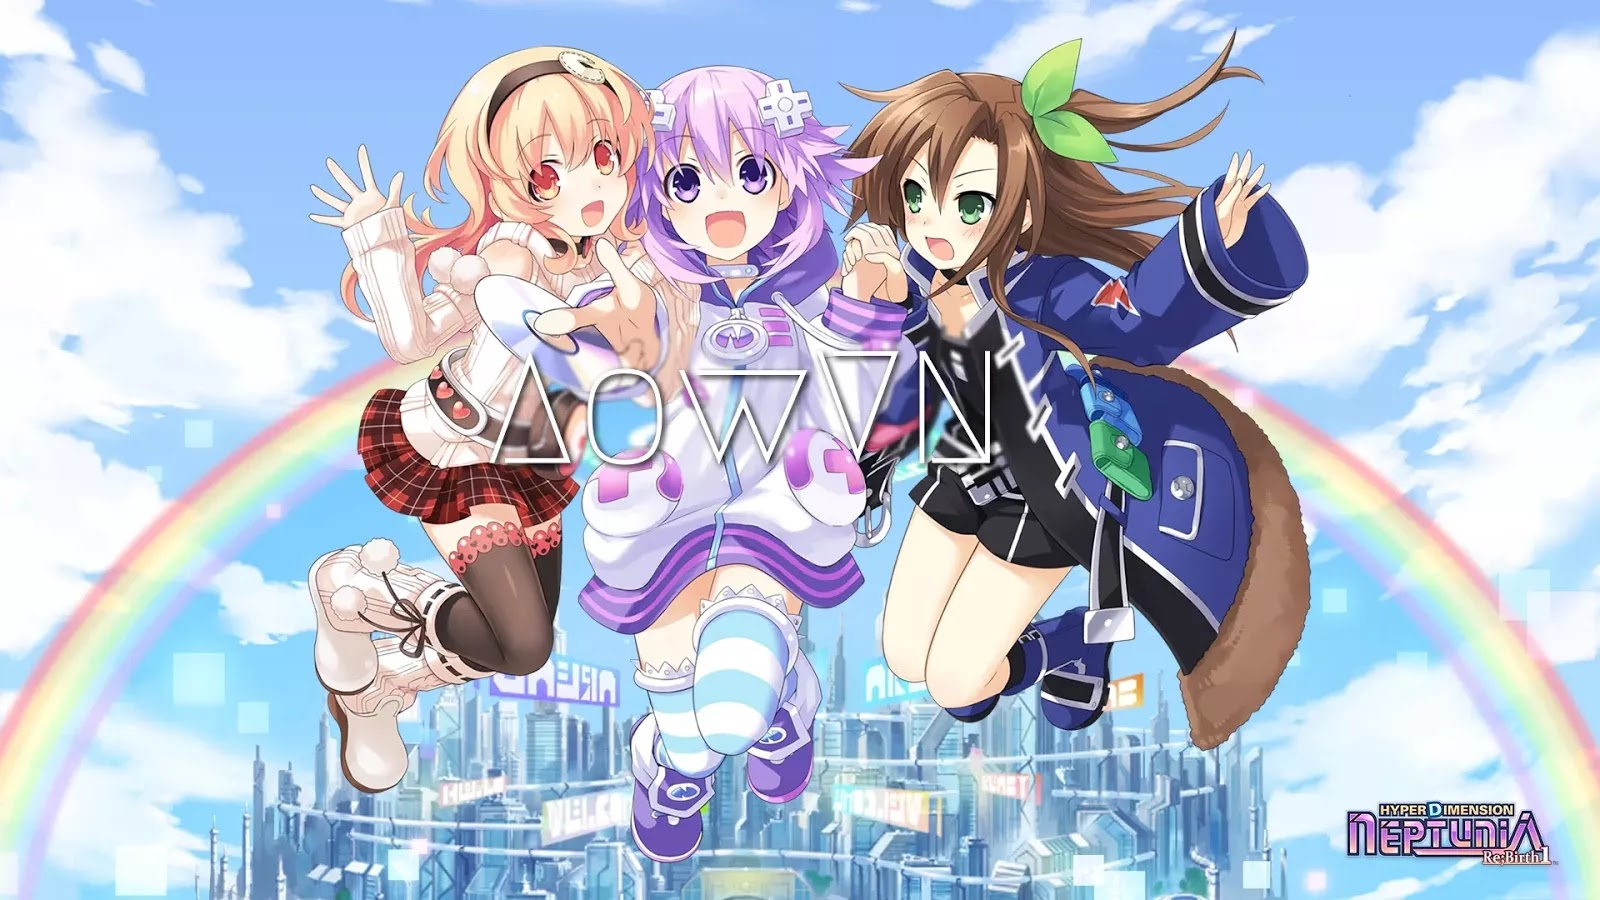 AowVN.org min%2B%25283%2529 - [ JRPG ] Hyperdimension Neptunia Re;Birth1 2 3 | Game PC Anime Visual Novel cực hay